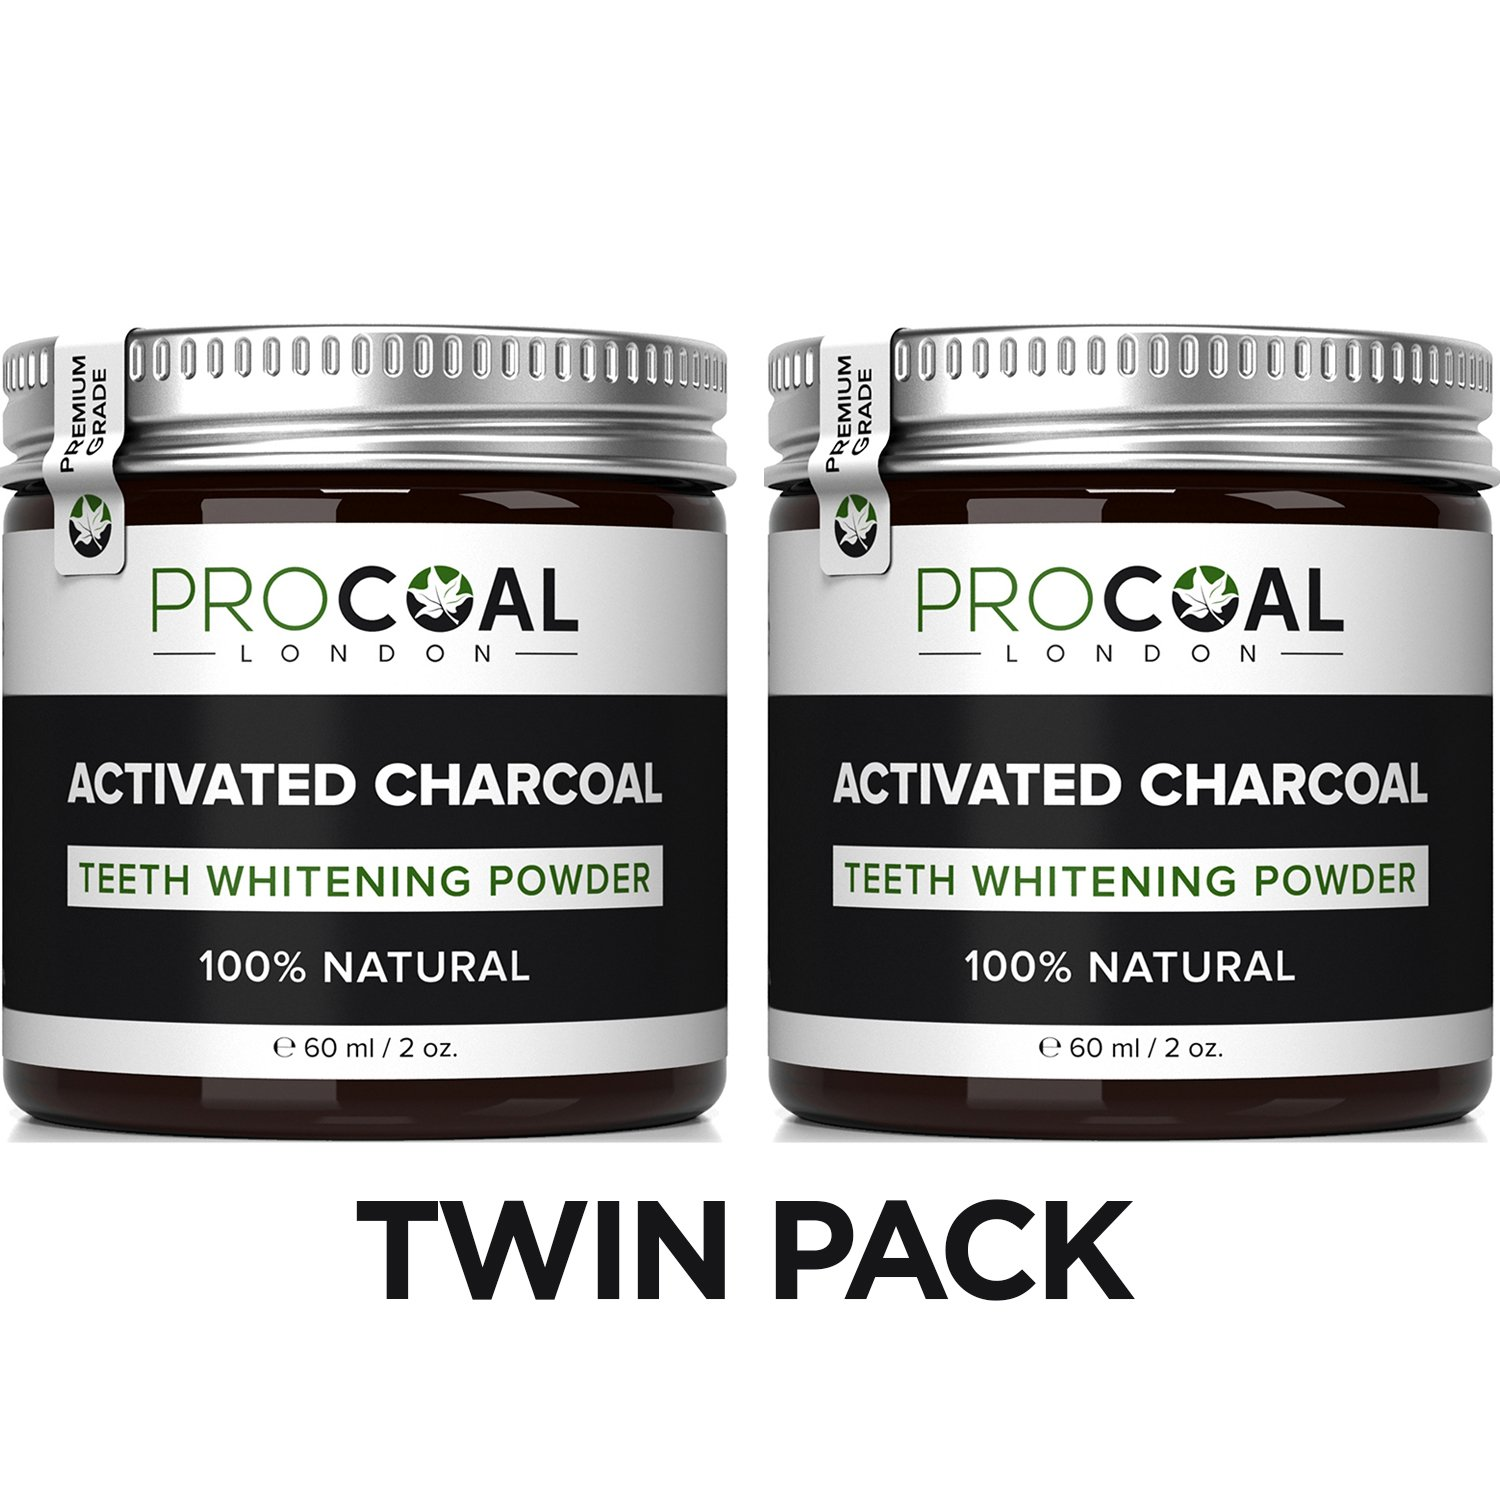 Activated Charcoal Teeth Whitener Kit by PROCOAL - 100% Natural Charcoal Teeth Whitening Toothpaste (2 Units) | Made in UK PCO-1